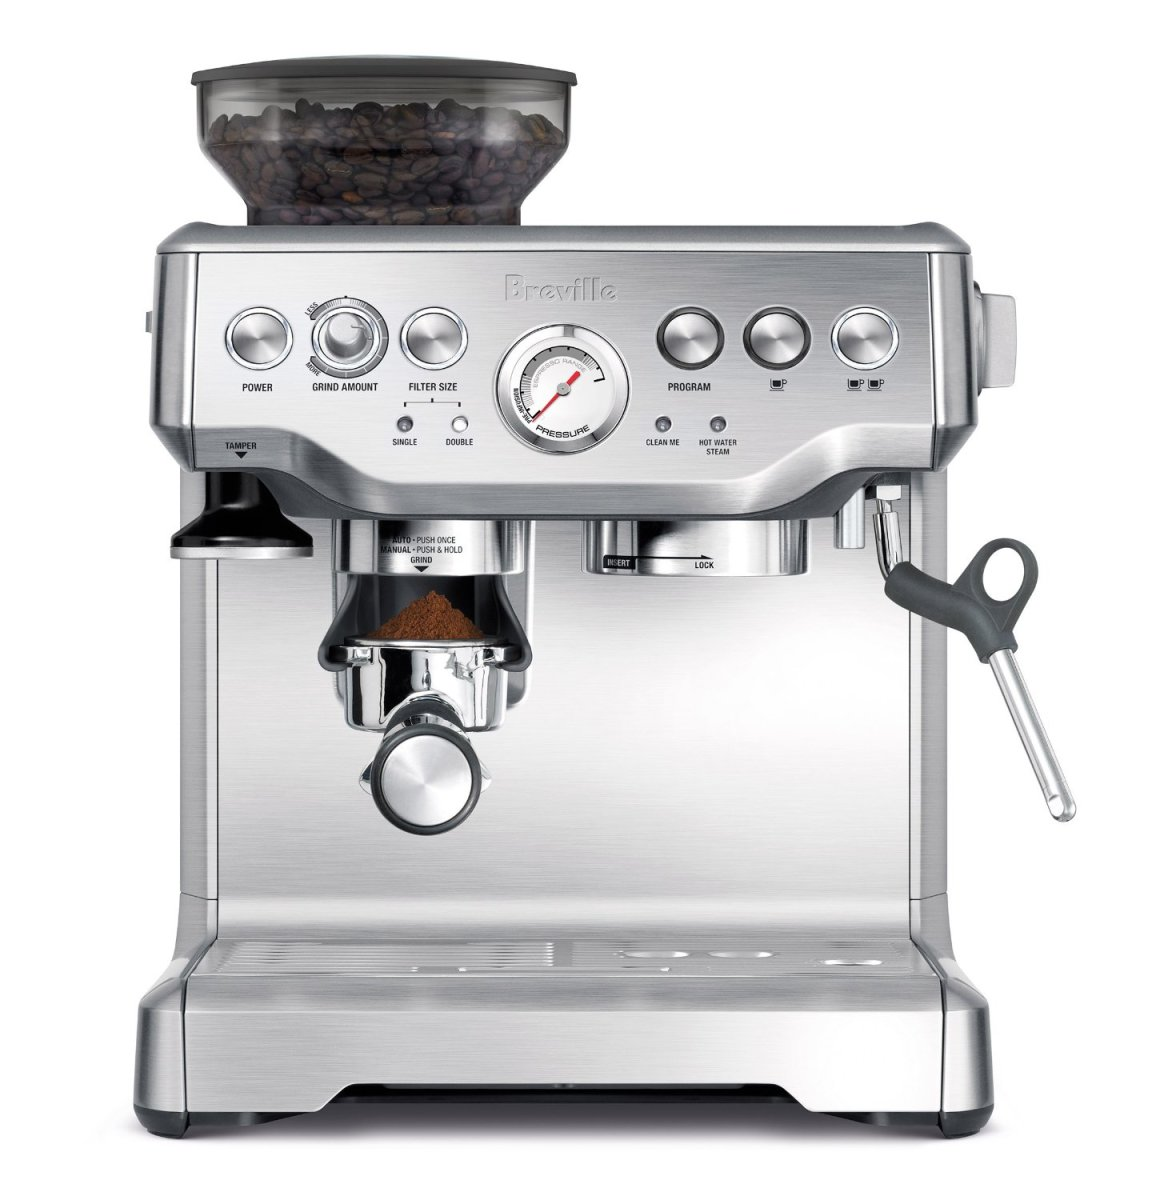 The Breville BES870XL Barista Express is a state of the art machine constructed from durable stainless steel with  a15 Bar Italian Pump and 1600W Thermo coil heating system.  For a machine of this high quality, it is also very competitively priced.